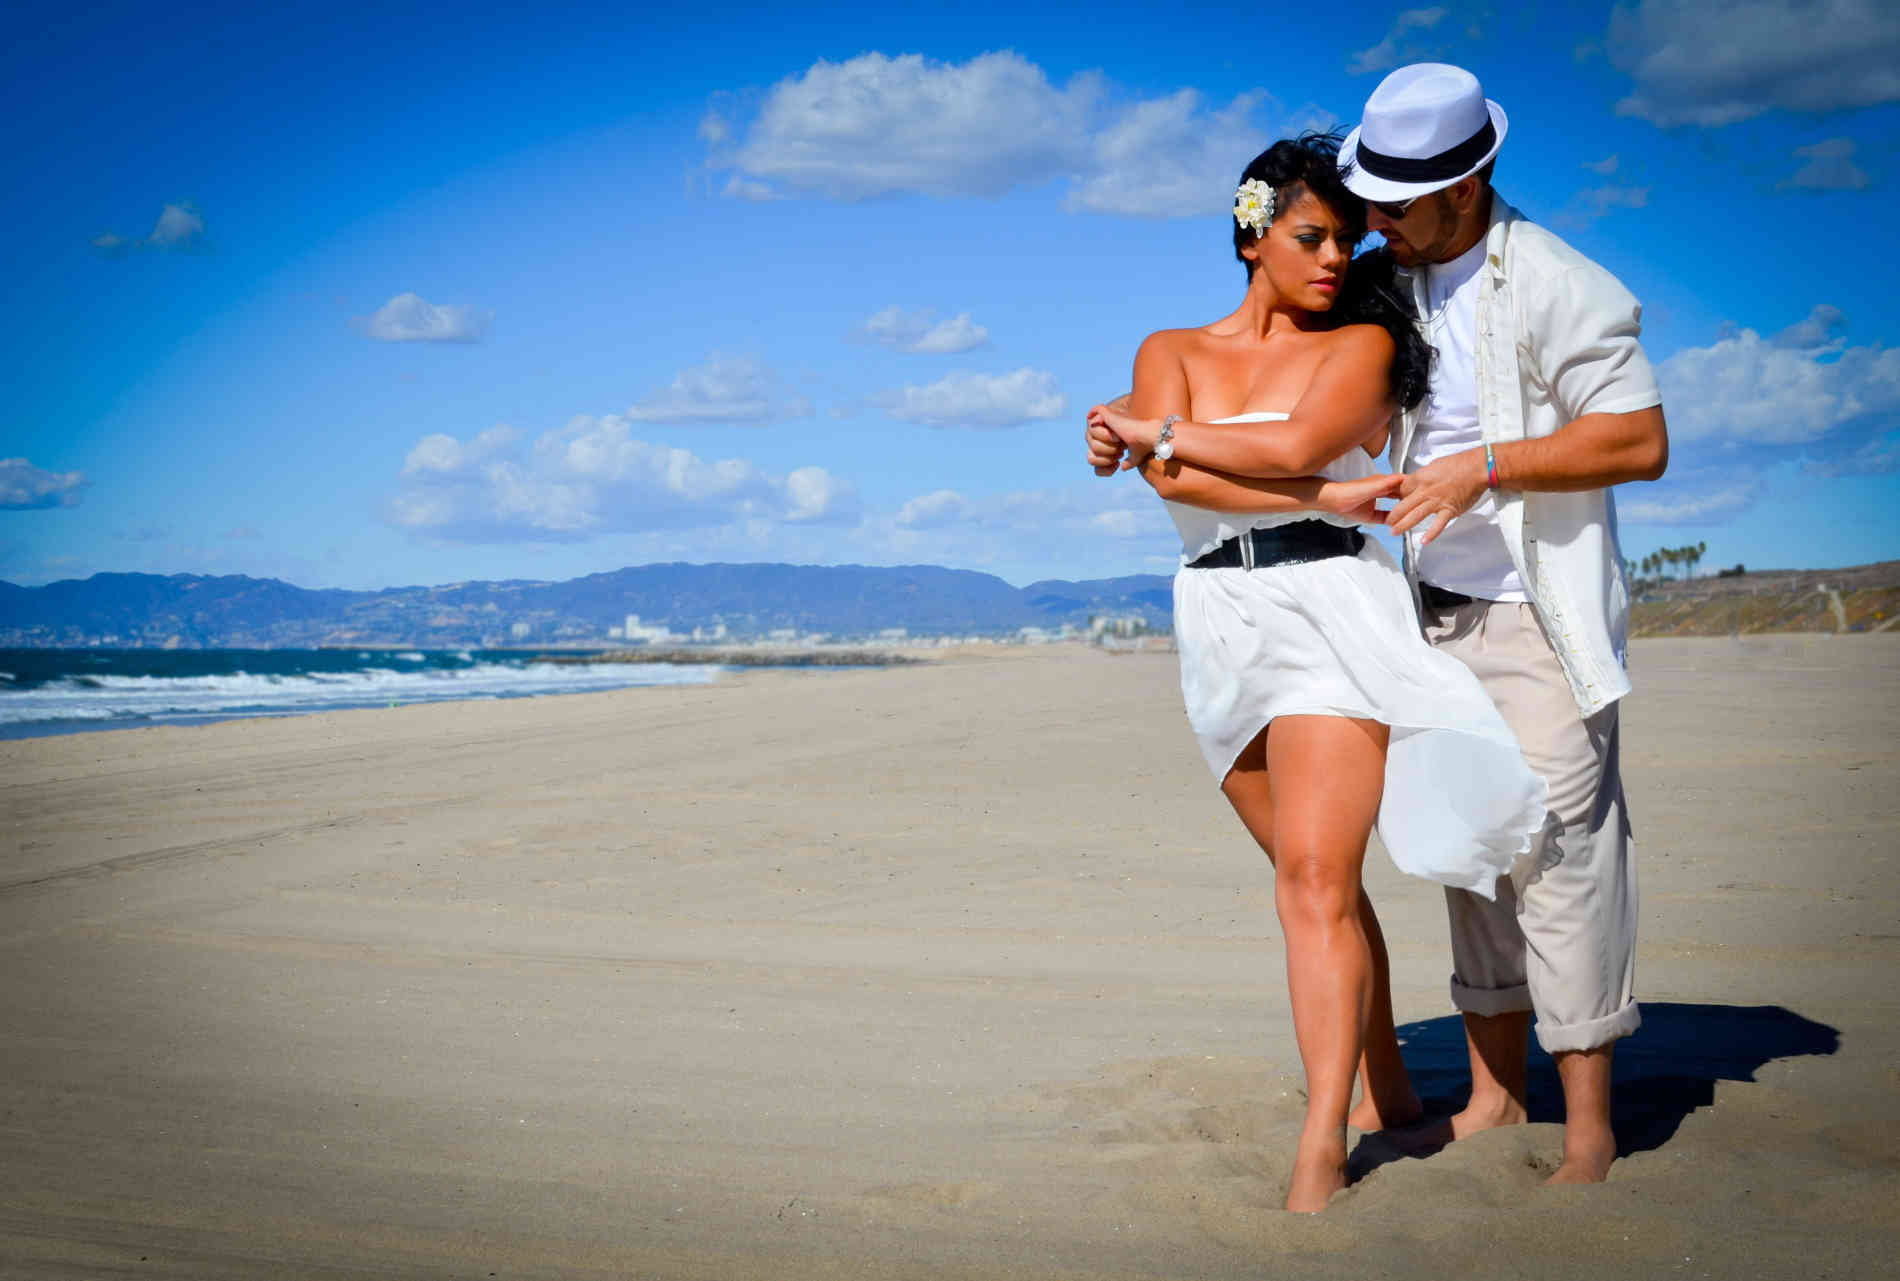 Bachata Dancing: Bachata Musicality And Timing PLAYLIST SUMMARY